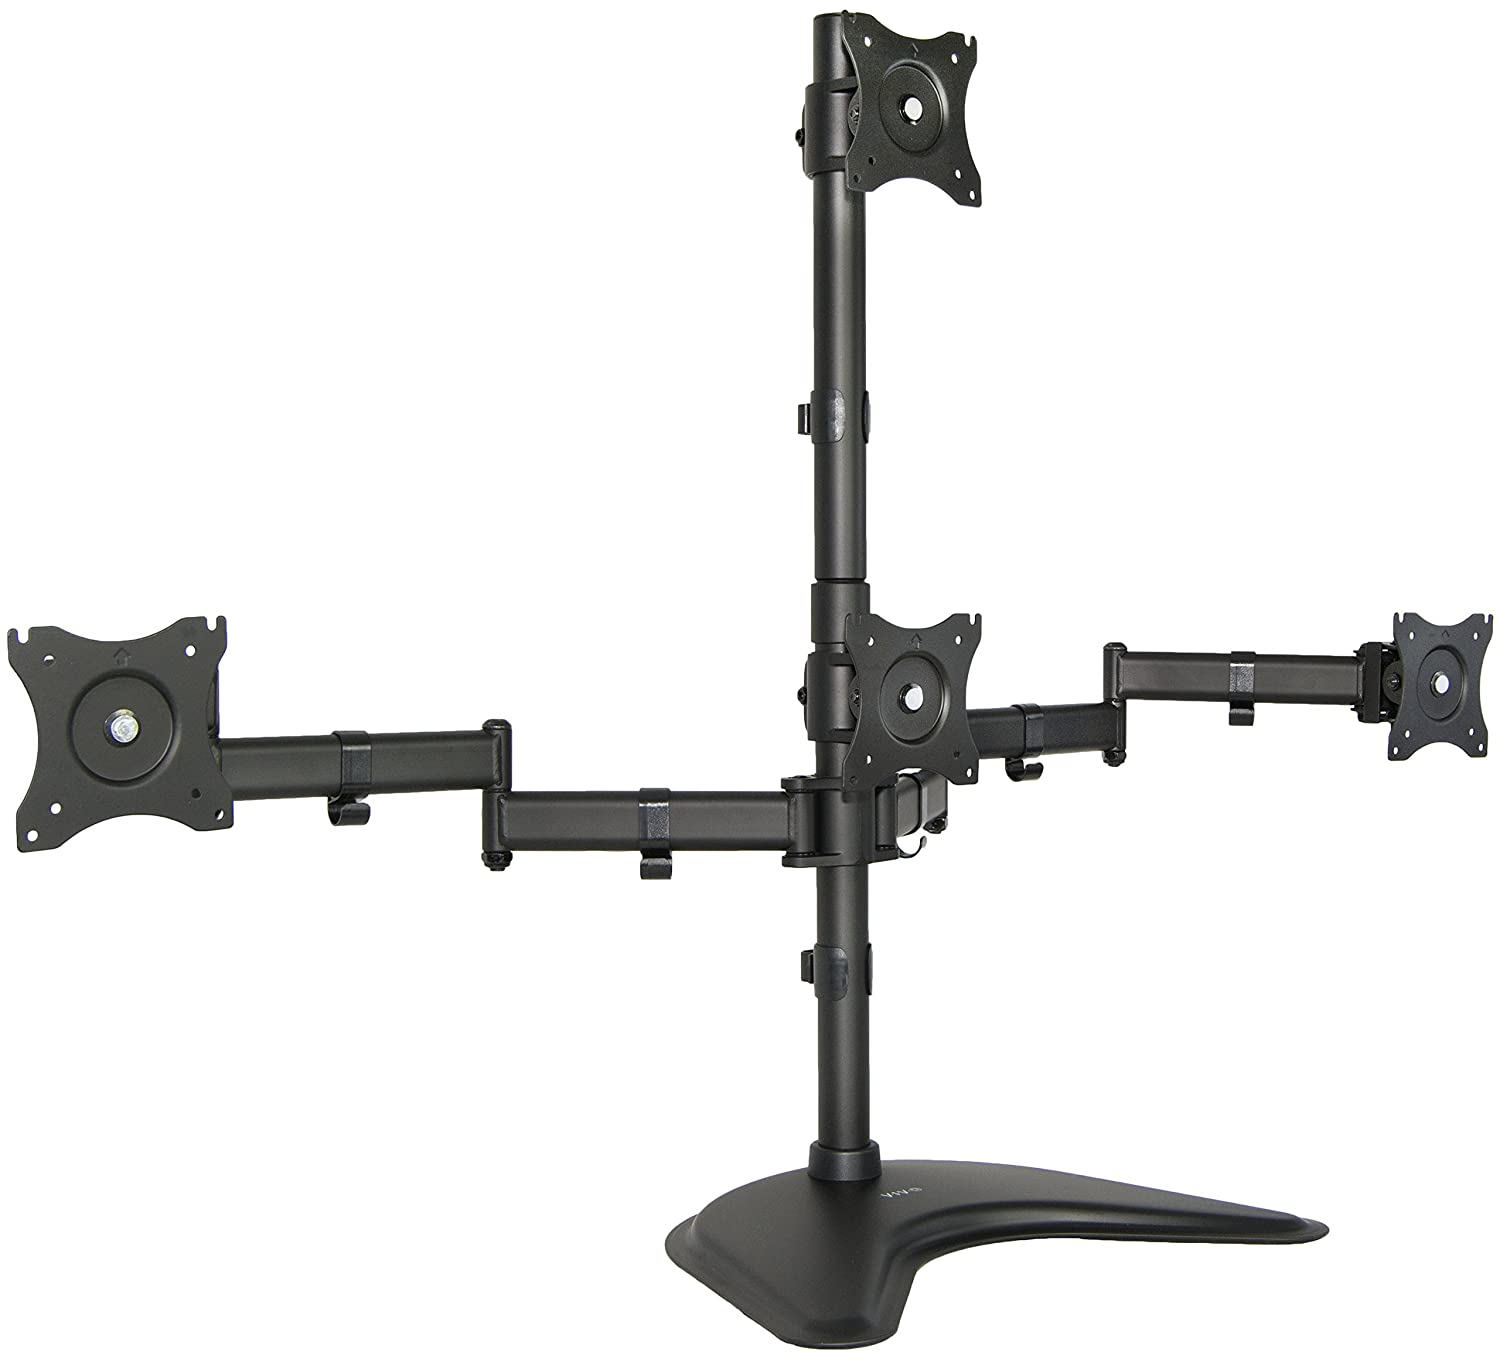 Amazon com vivo triple lcd monitor desk mount stand heavy duty fully - Amazon Com Quad Lcd Monitor Desk Stand Mount Free Standing 3 1 4 Holds Four Screens Up To 24 Stand V004z Computers Accessories